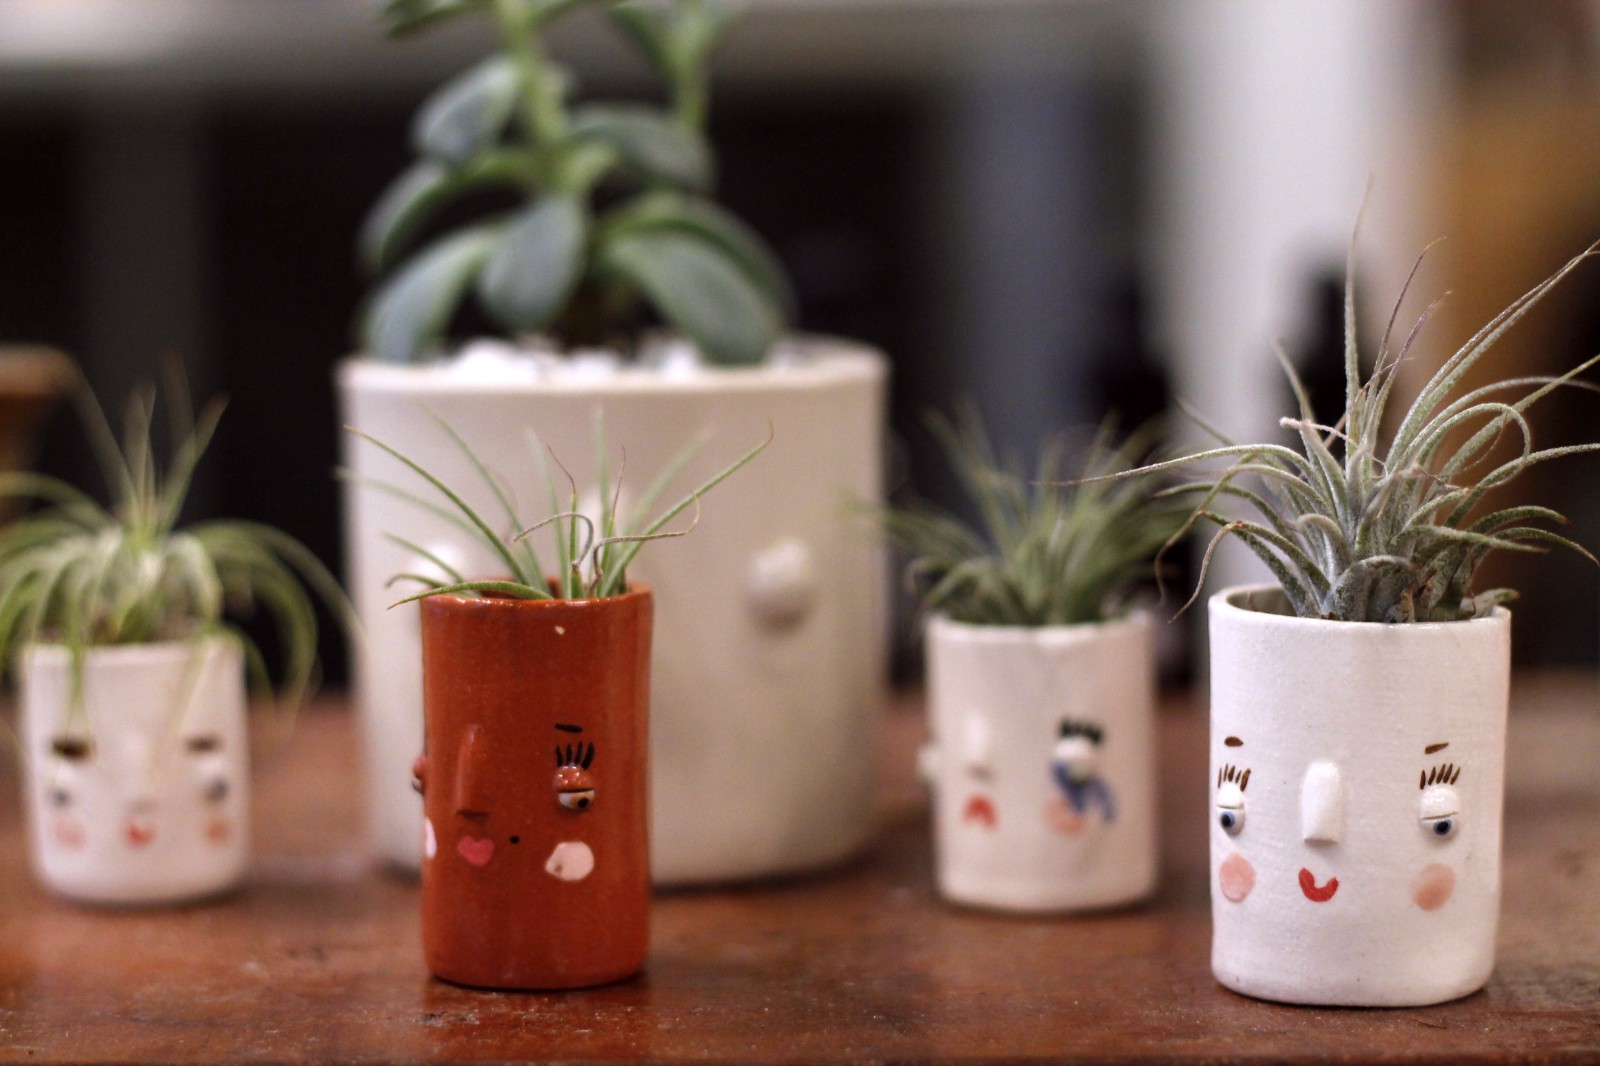 inspiring des moines home and garden show. The Art Terrarium s collection of pottery and home decor is anything but  basic From these tiny smiling pots to geometric hanging baskets you re bound Discovering the in downtown Des Moines